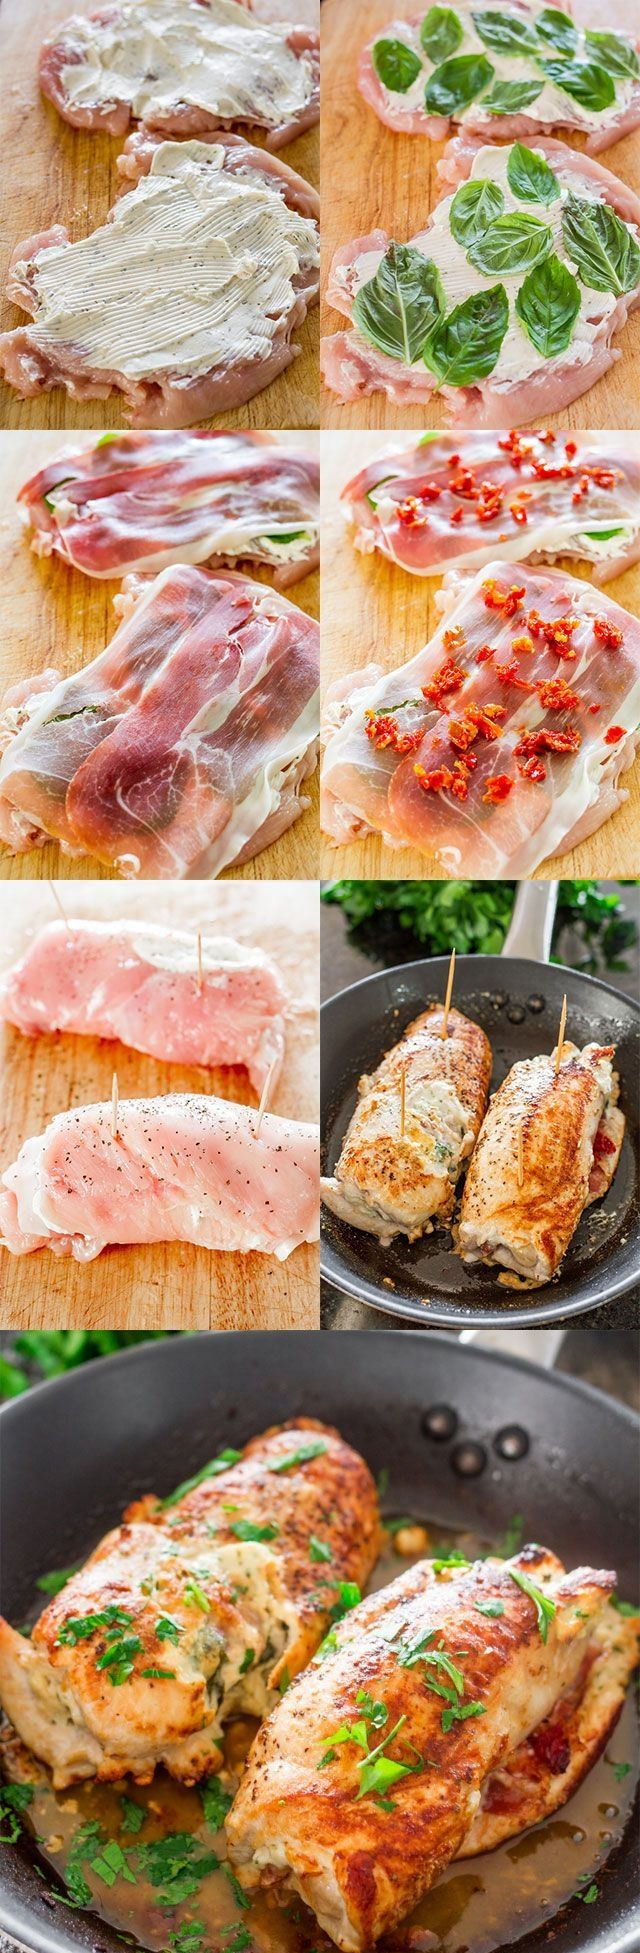 Cheese and Prosciutto Stuffed Chicken Breasts - an impressive dish for a Sunday night dinner or a Holiday. Delicious chicken rolls with a surprise filling.